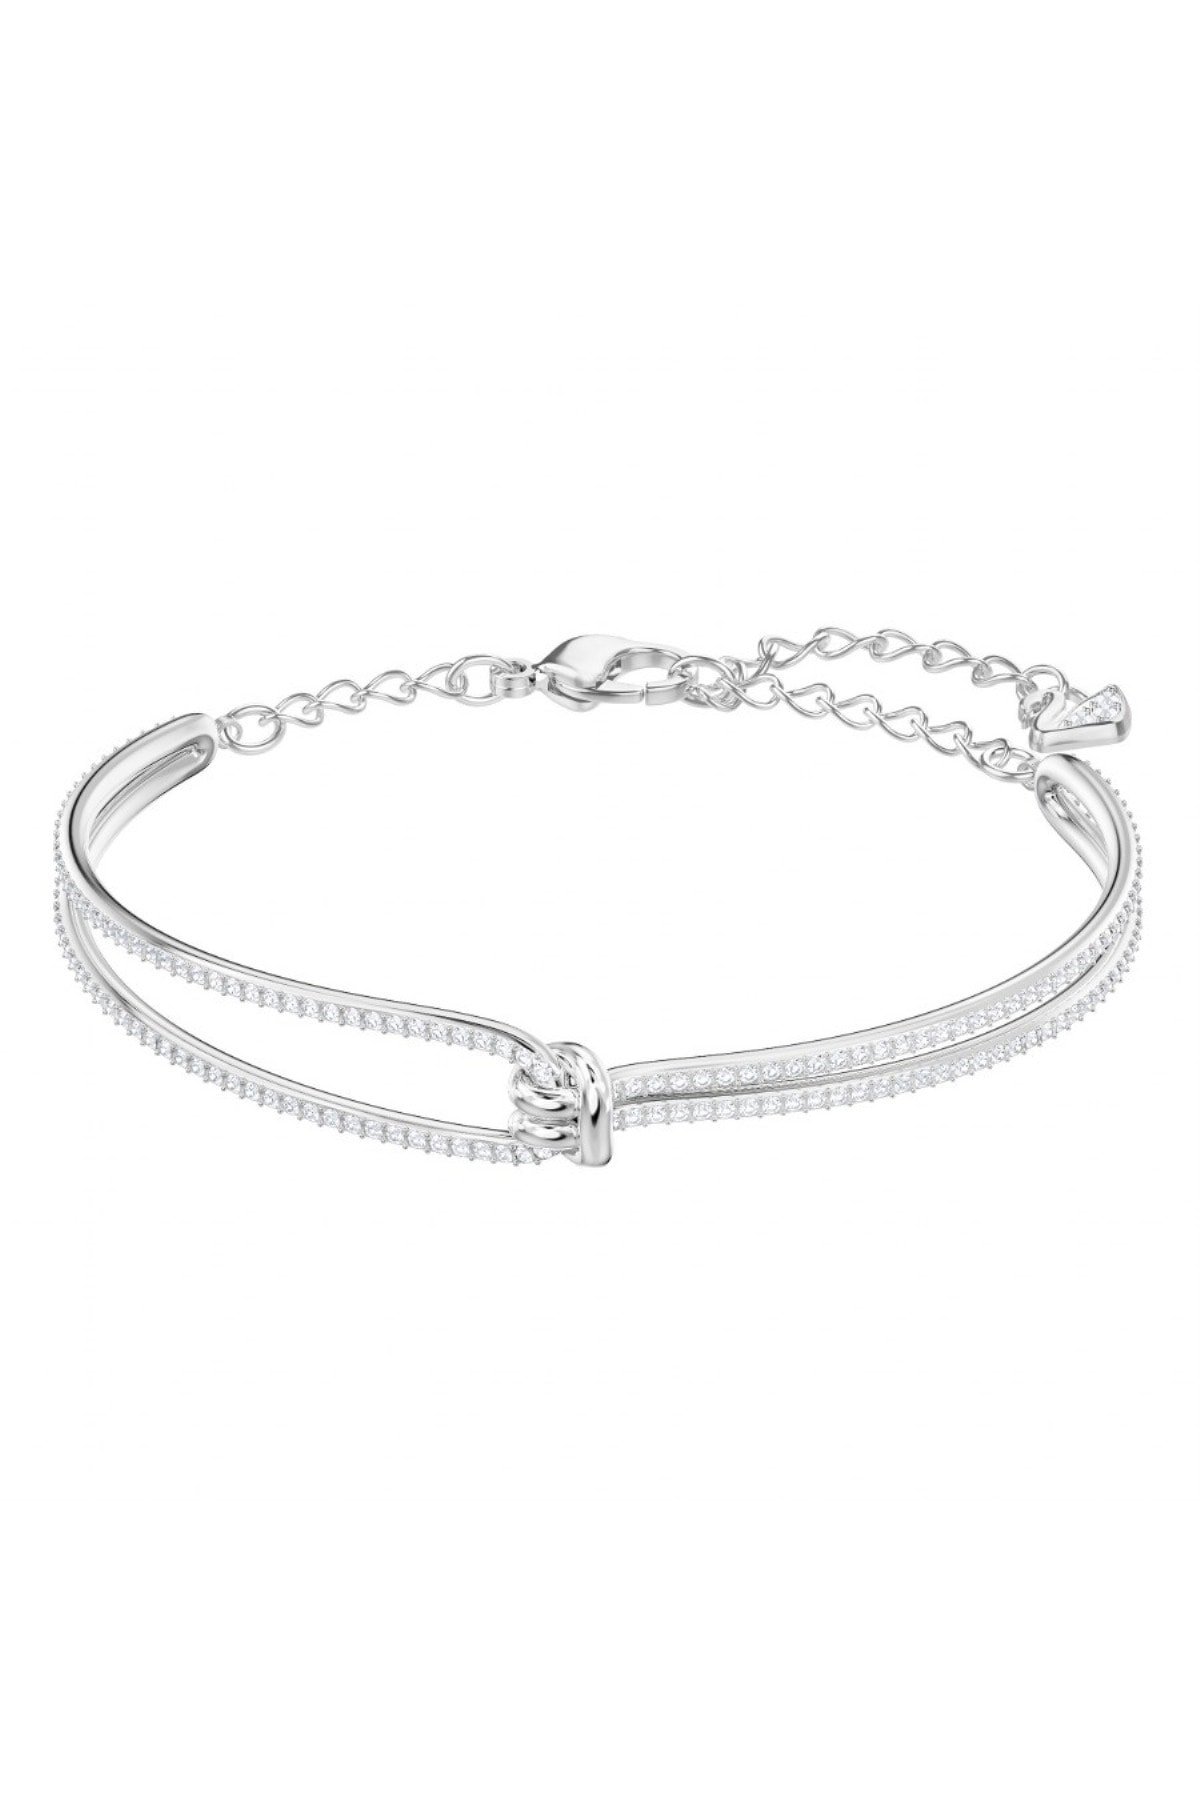 Swarovski 5368552 Bilezik Lifelong:bangle Cry/rhs M 5368552 1